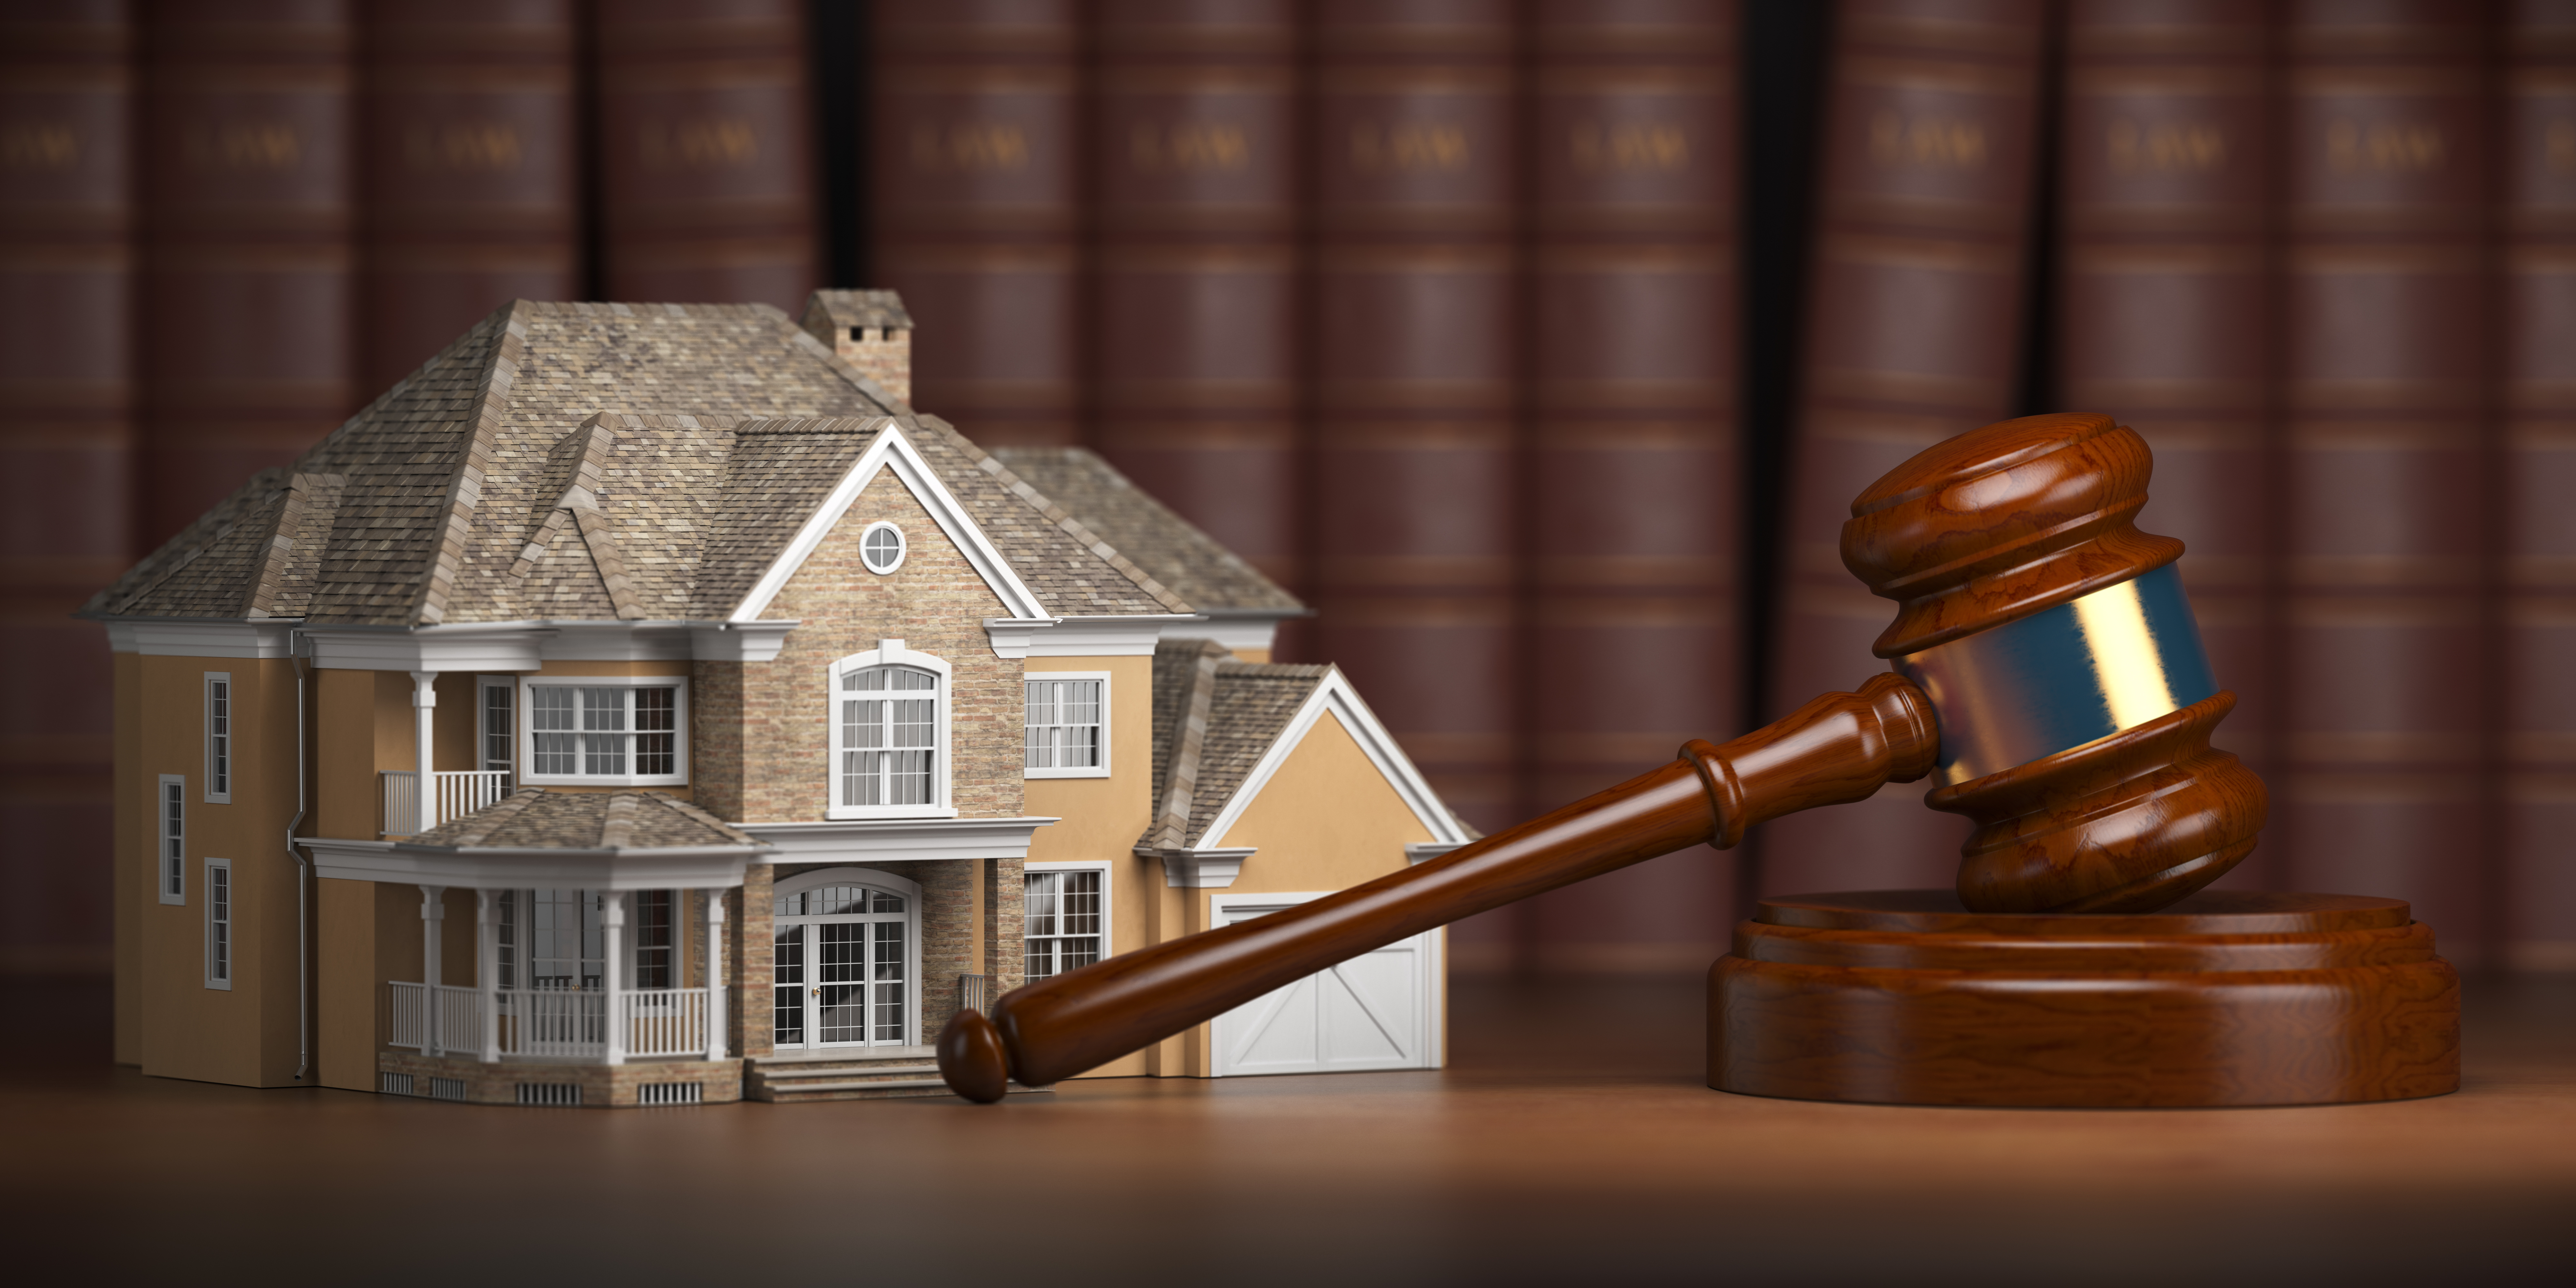 house-with-gavel-and-law-books-bankruptcy-chapter-13-law